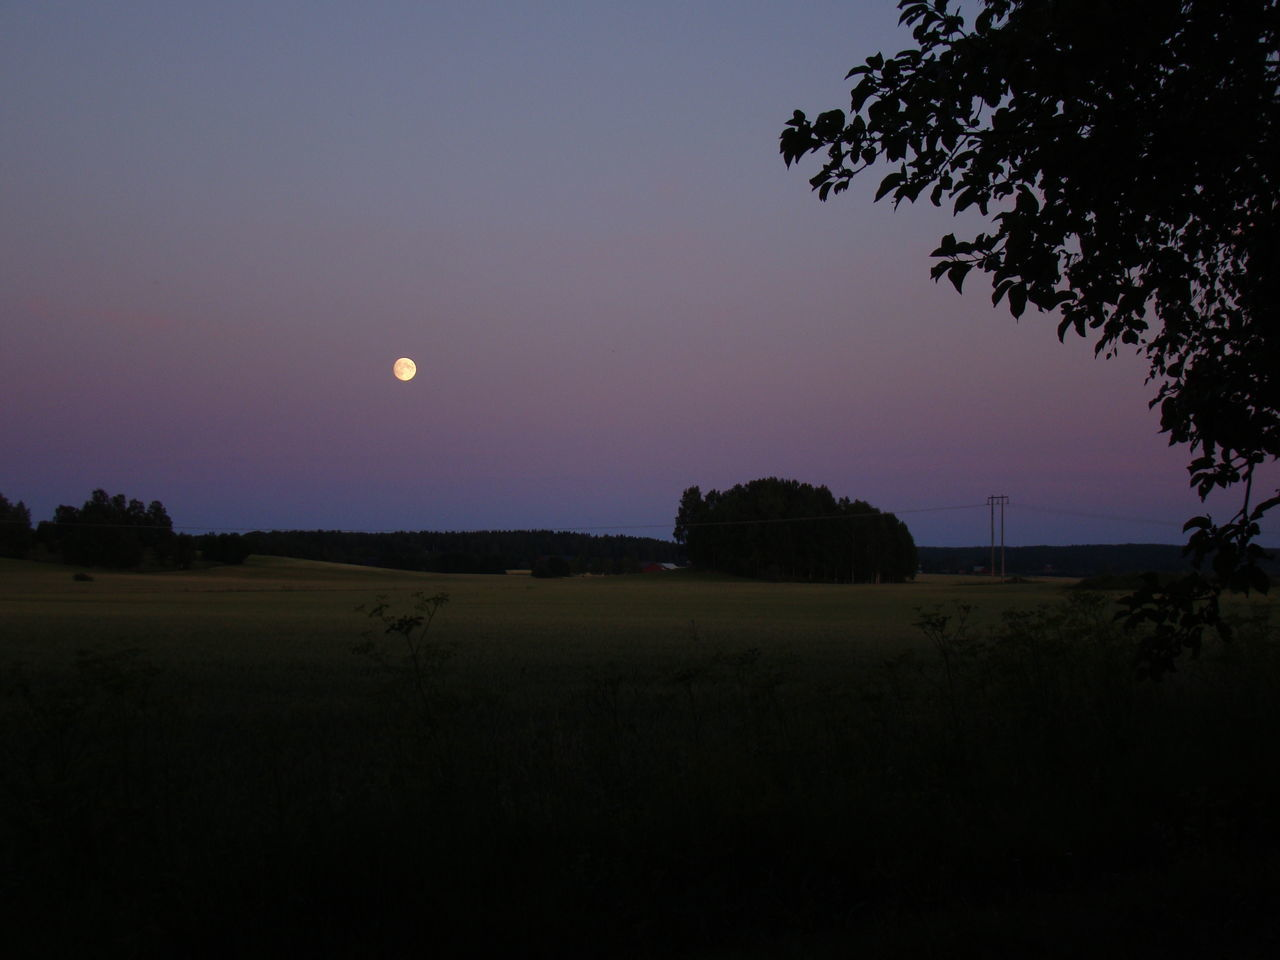 tree, moon, beauty in nature, nature, tranquil scene, no people, tranquility, field, scenics, sunset, silhouette, landscape, sky, outdoors, clear sky, growth, night, astronomy